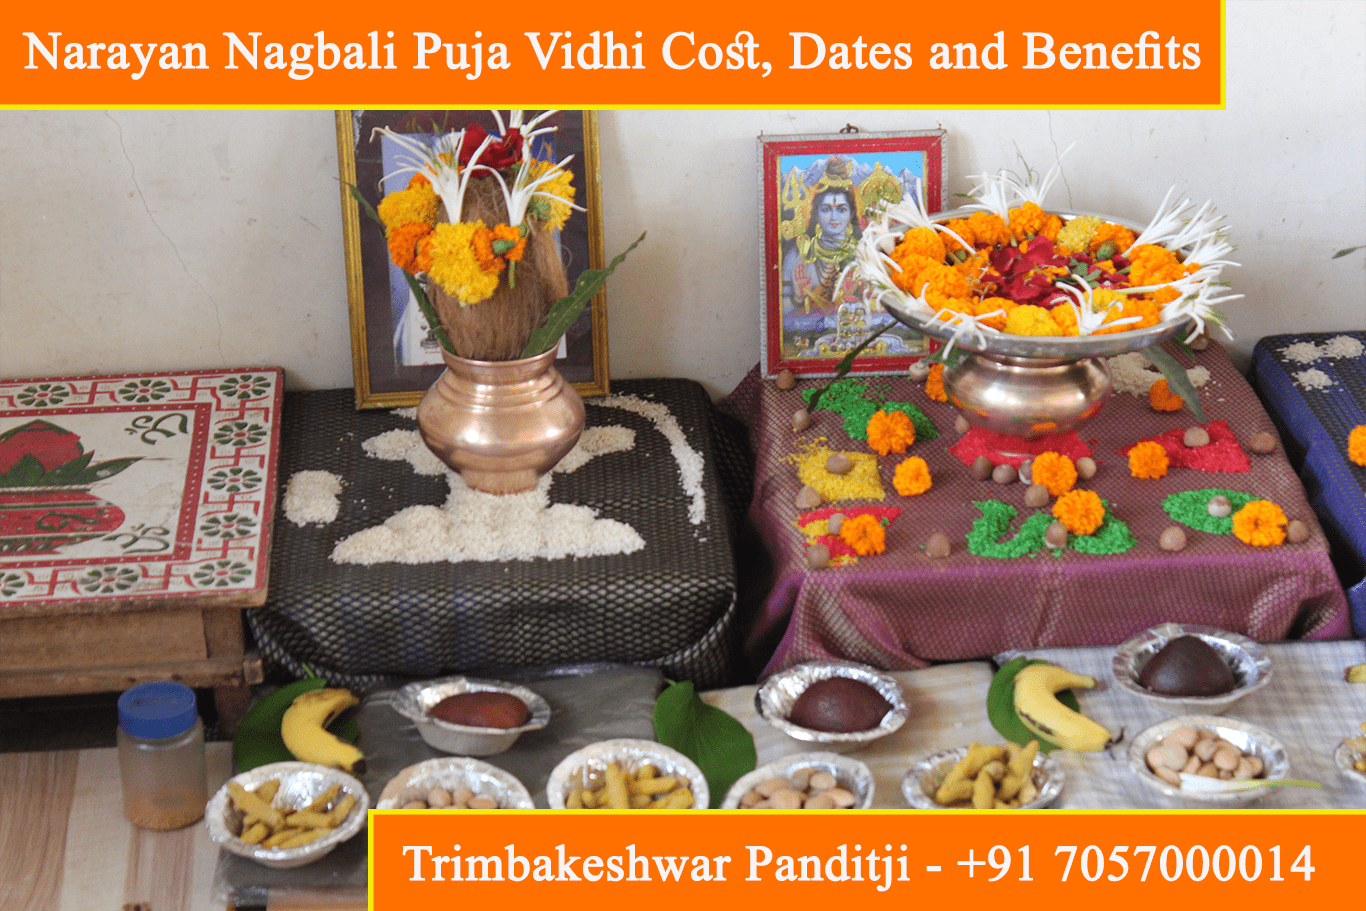 Narayan Nagbali Puja Vidhi, Cost, Dates, Benefits, Effects and Procedure